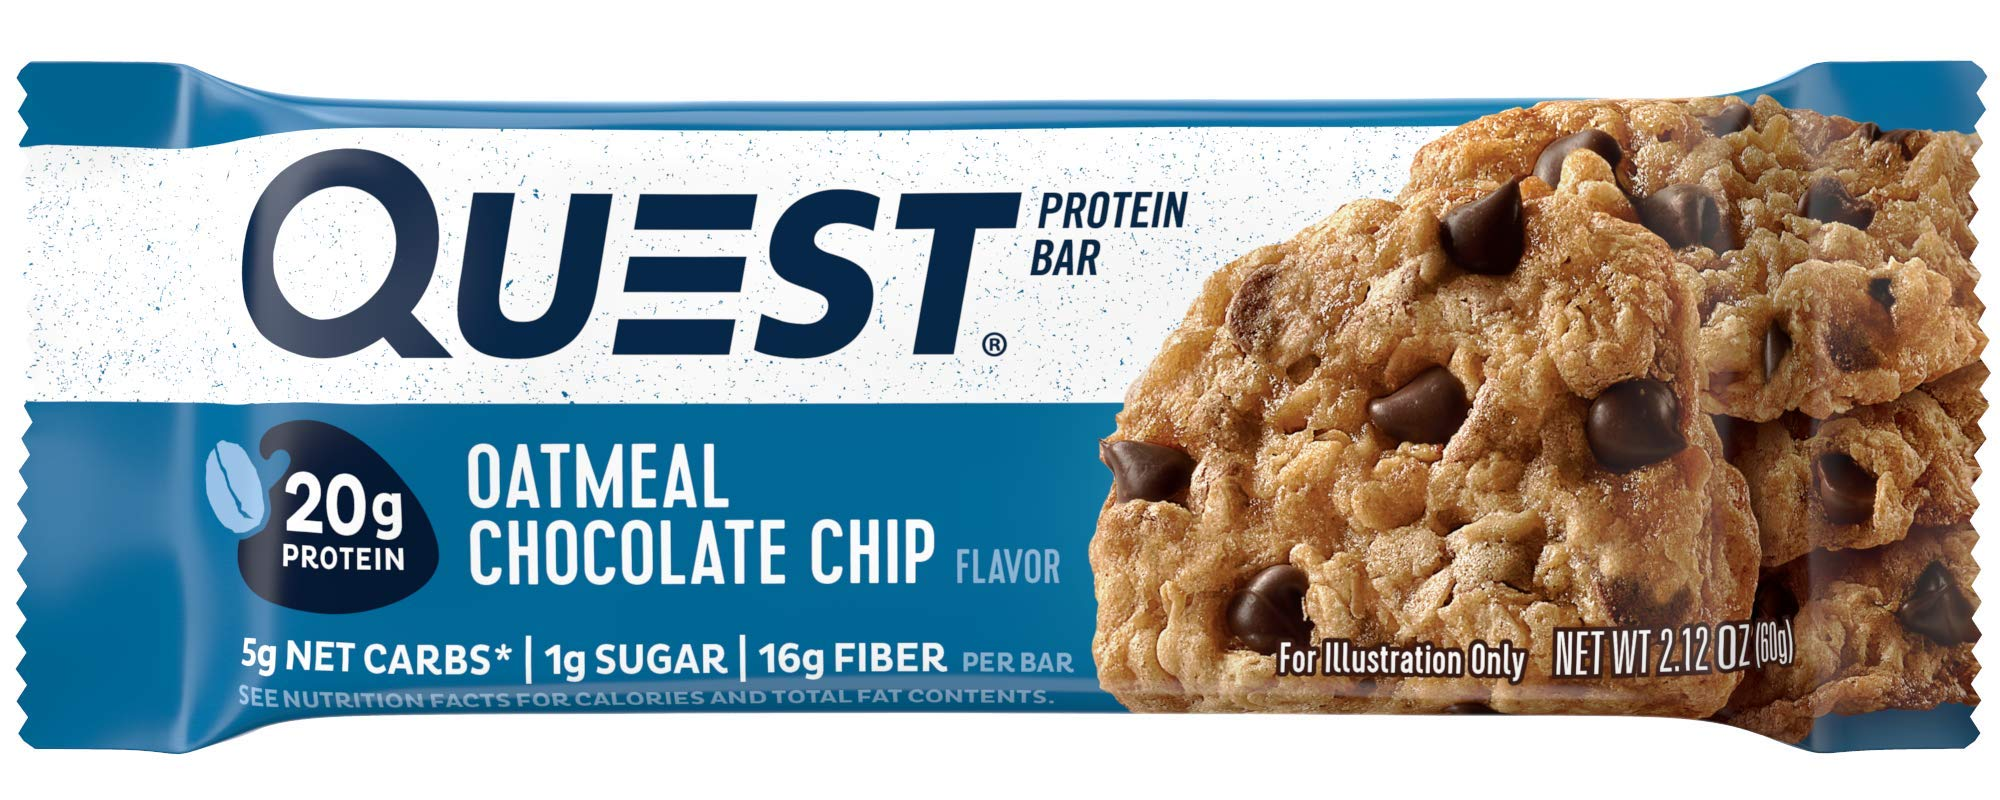 Quest Nutrition Oatmeal Chocolate Chip Protein Bar, High Protein, Low Carb, Gluten Free, Soy Free, Keto Friendly, 12 Count